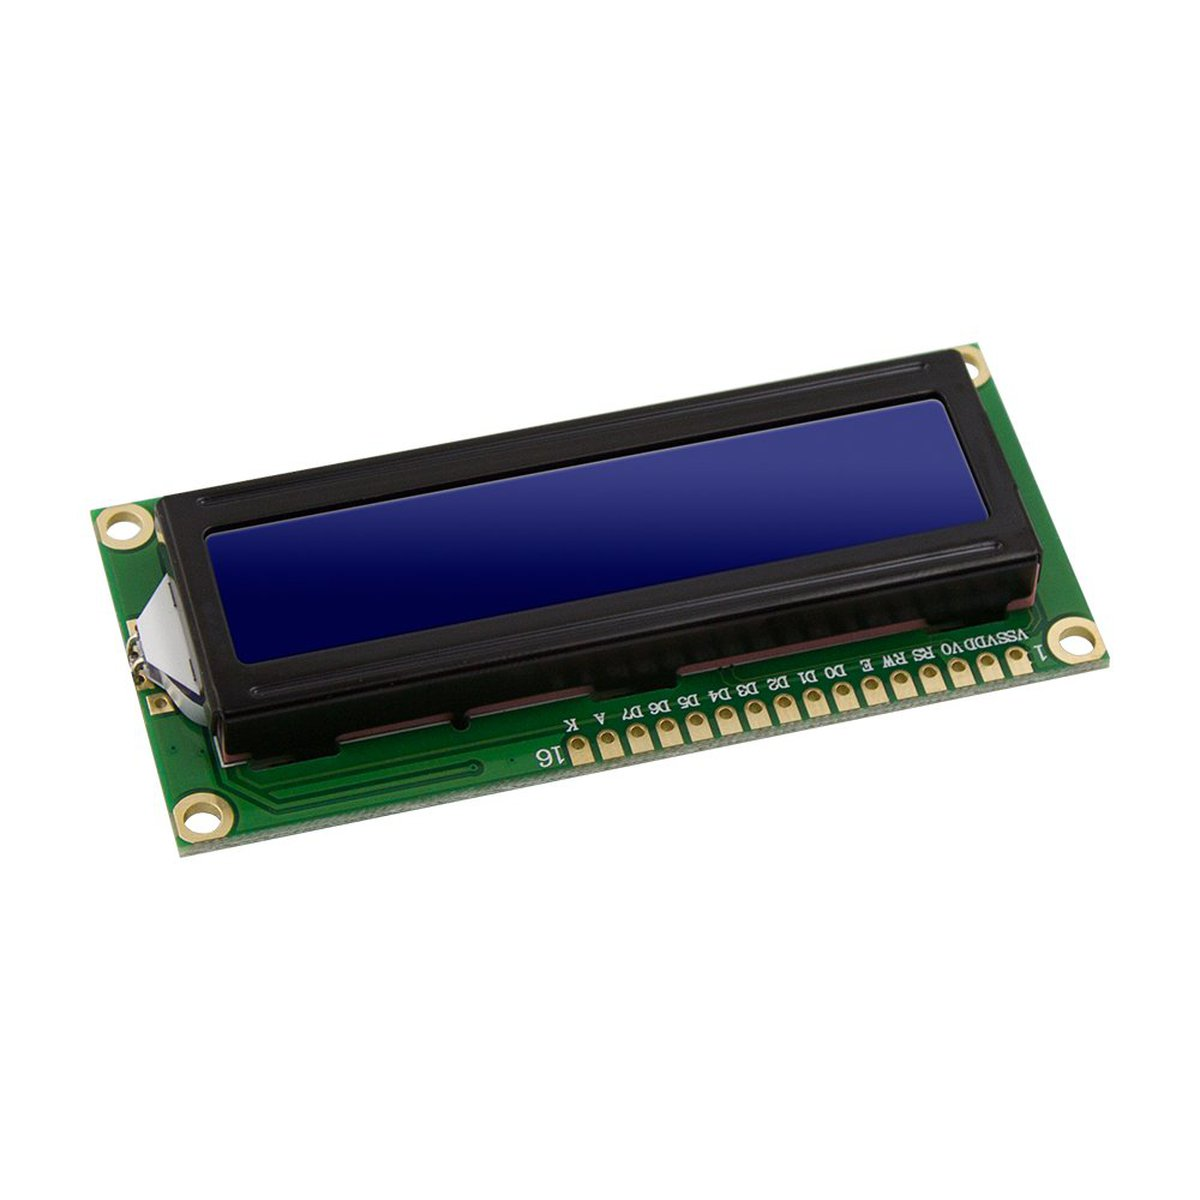 LCD Module Display Monitor 1602 5V Blue Screen from robotart on Tindie